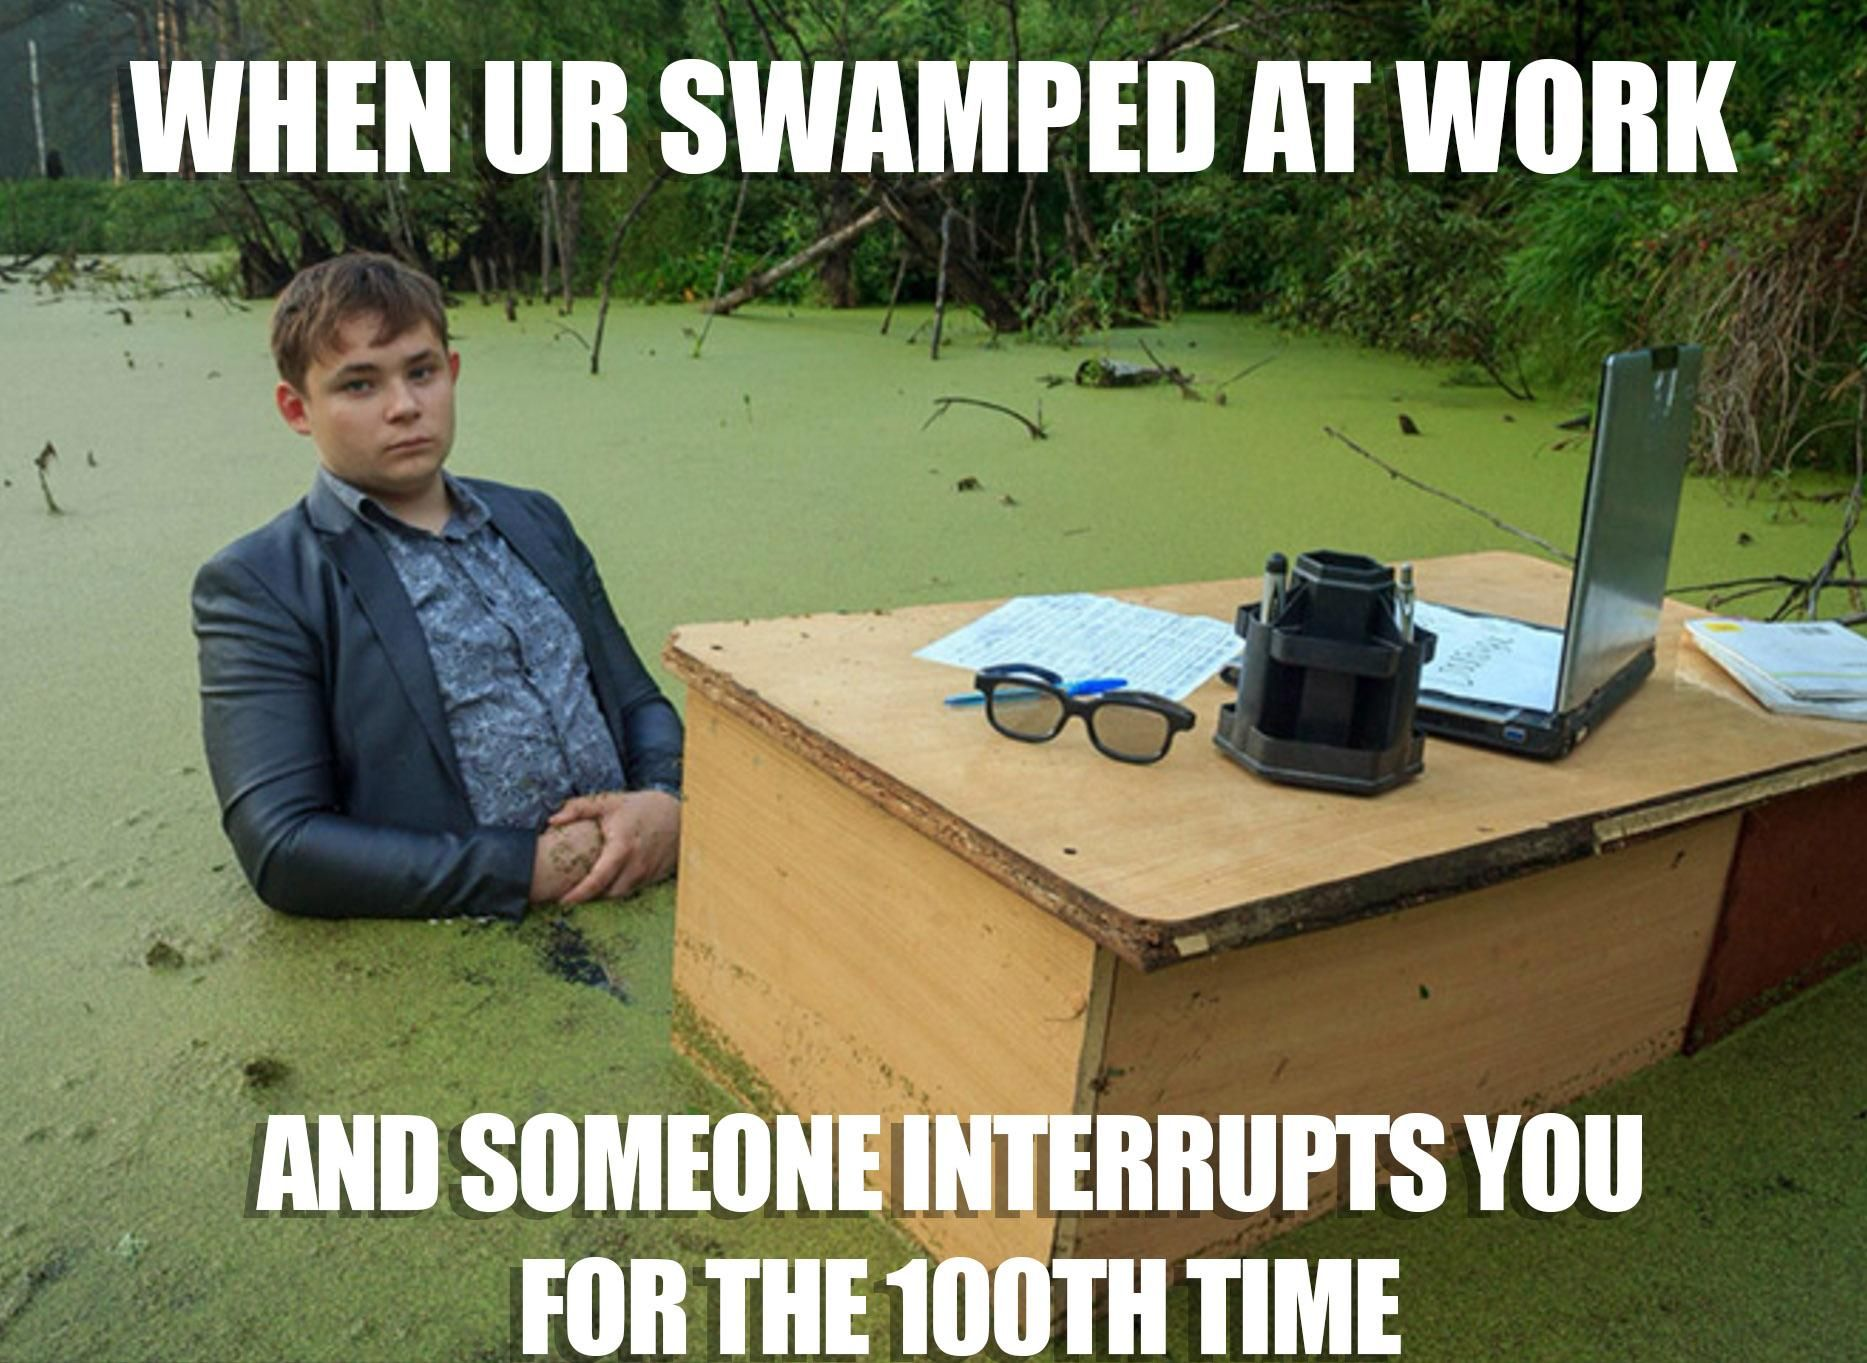 [/r/FreshMemes] When You're Swamped Work Work memes